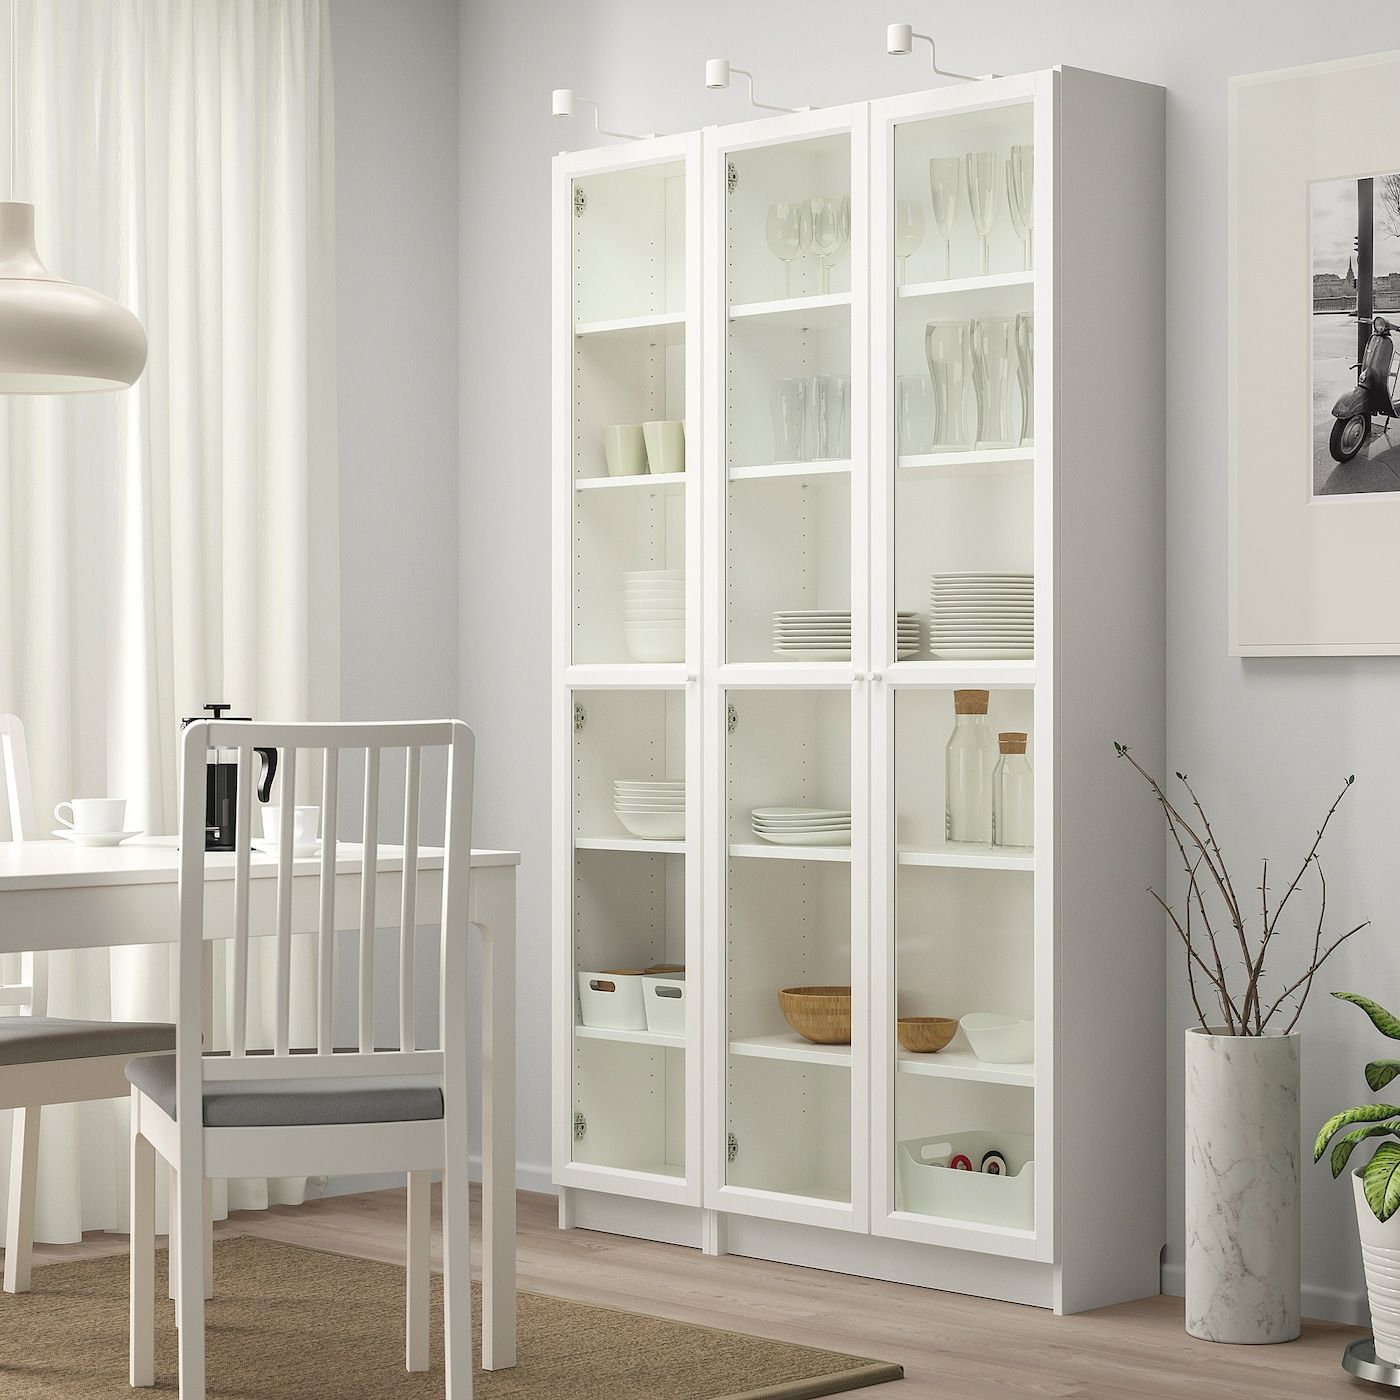 Billy Oxberg Bookcase With Glass Doors White 47 1 4x11 3 4x79 1 2 Ikea Bookcase With Glass Doors Glass Shelves Kitchen Glass Bookcase